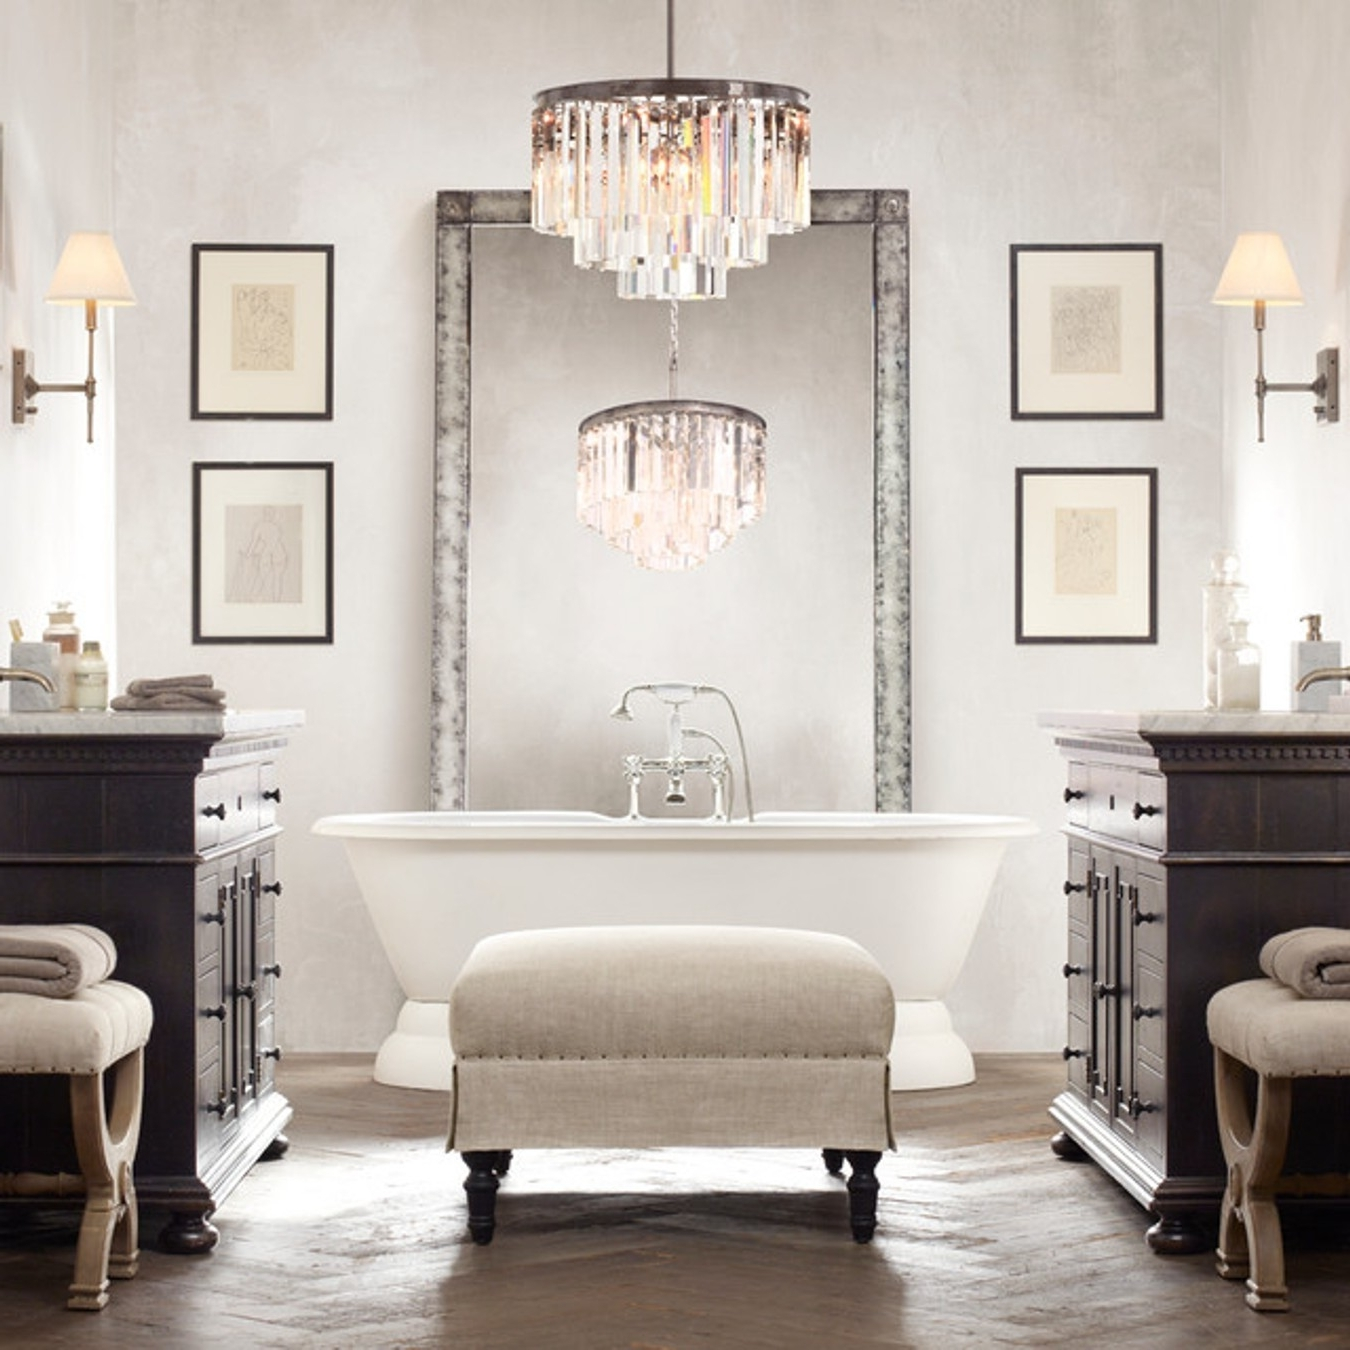 Widely Used Bathroom Chandeliers Within Pendant Lights (View 7 of 20)